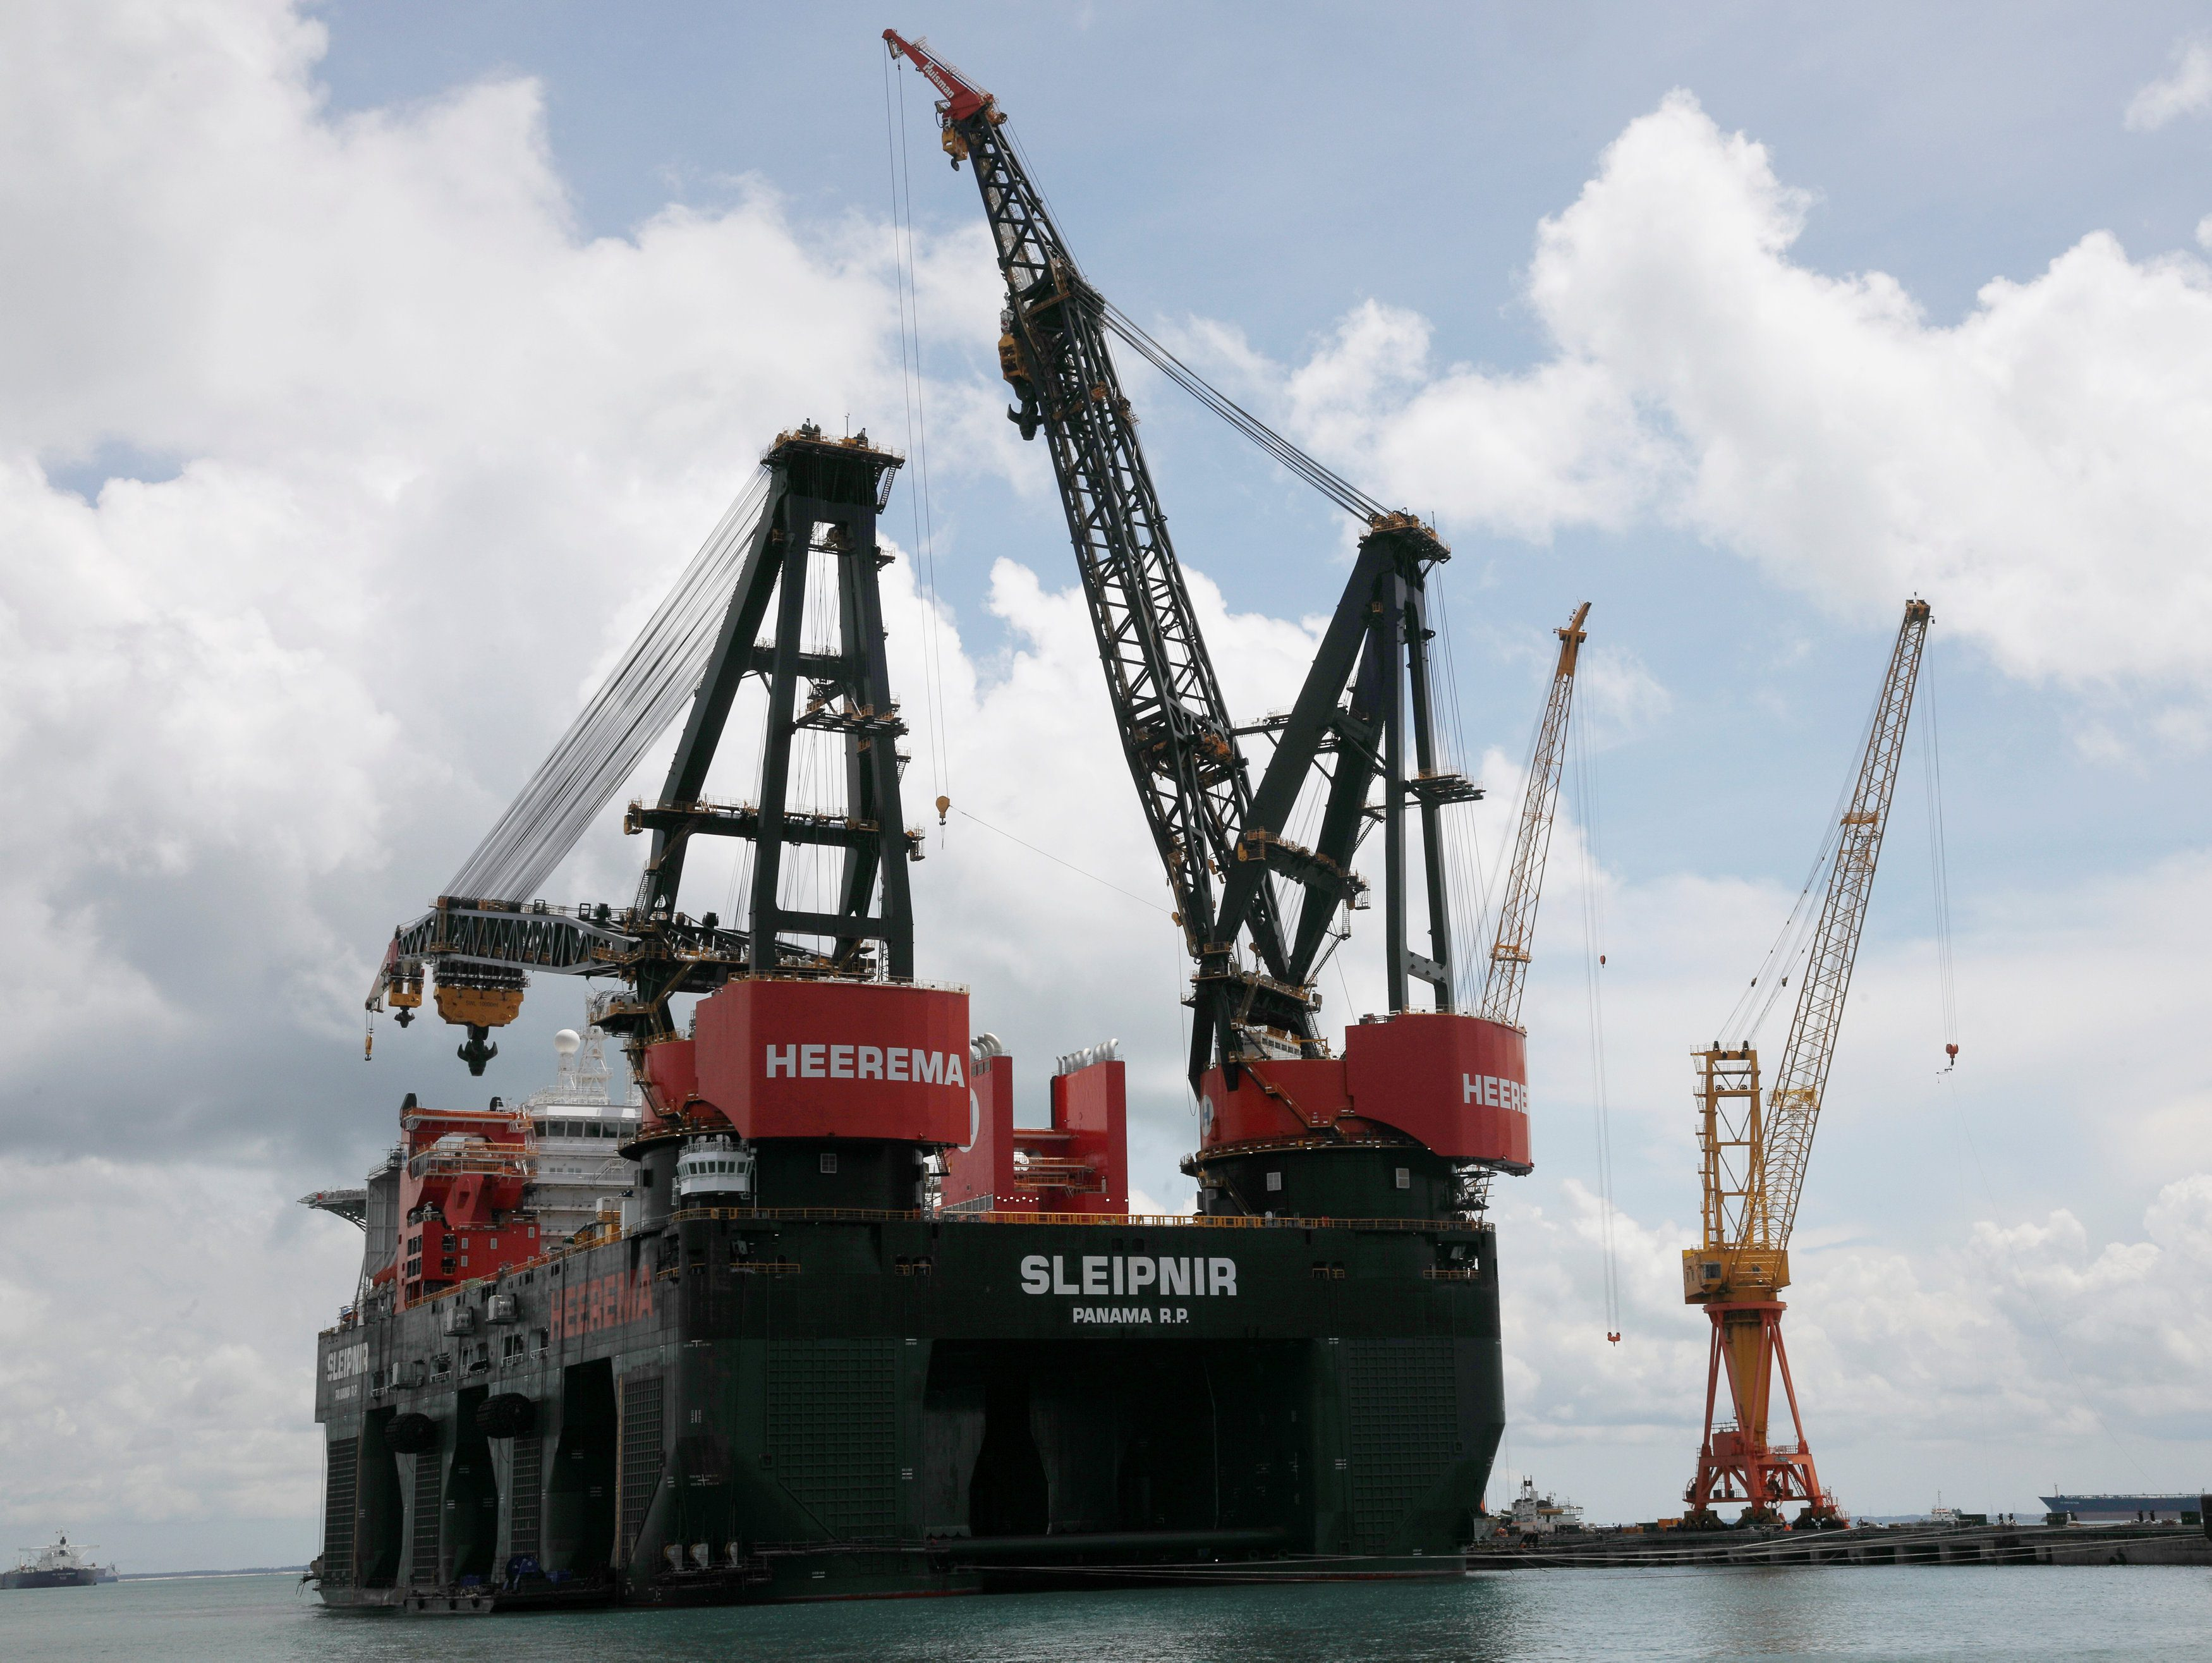 Heerema Marine Contractors' Sleipnir, the world's largest semi-submersible crane vessel, sits in the Sembcorp Marine shipyard in Singapore